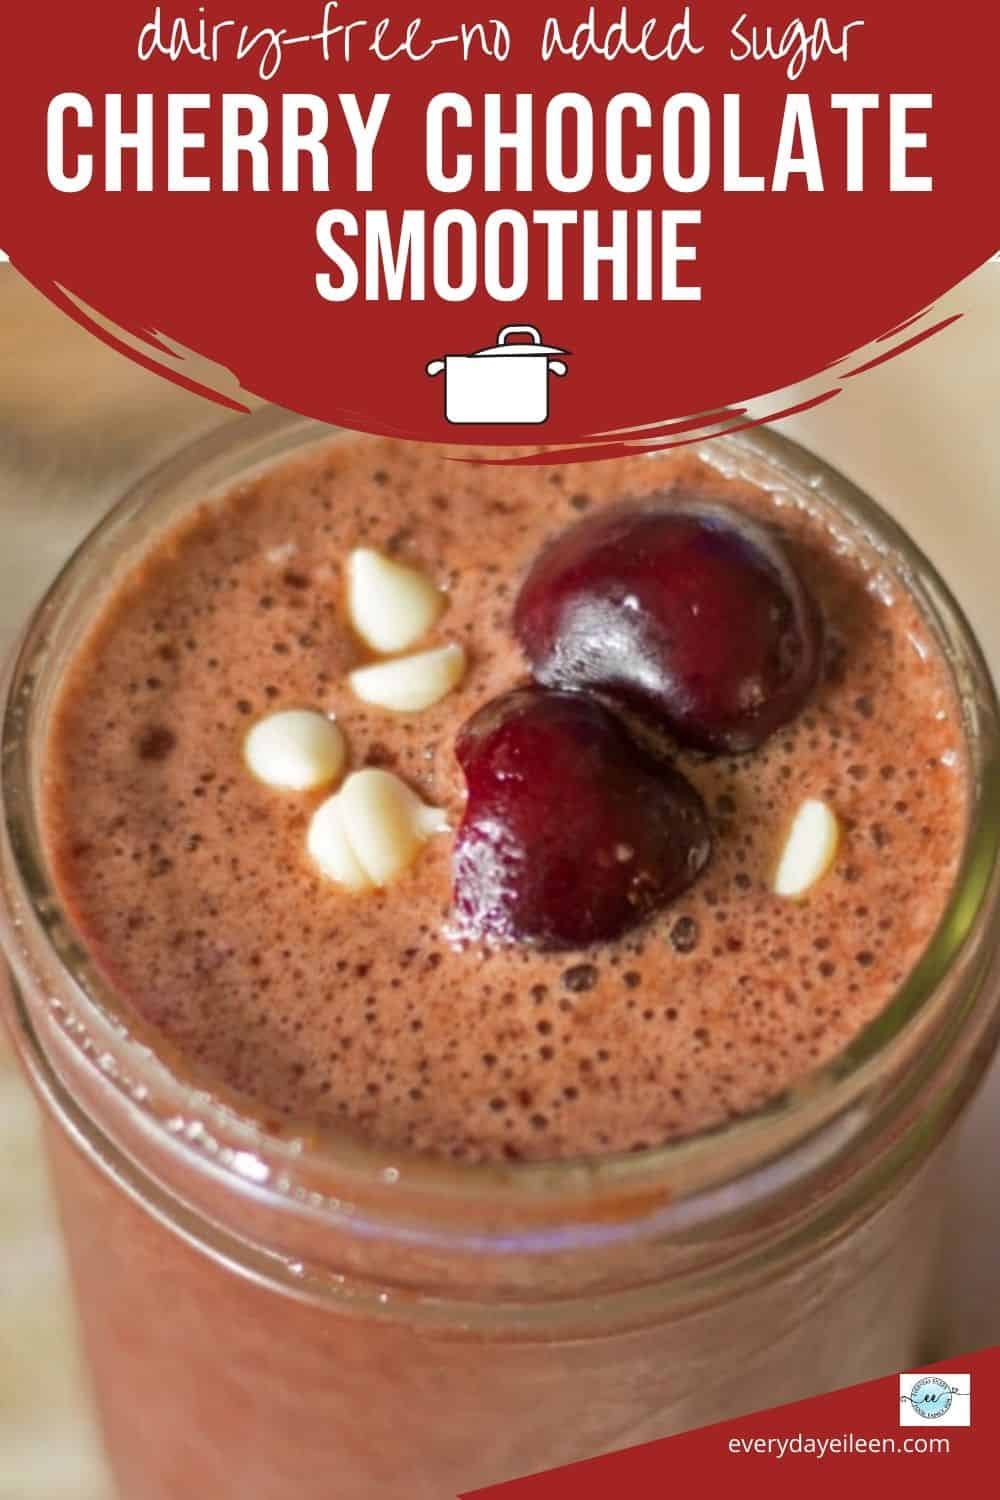 A tasty mouthwatering Cherry Chocolate Smoothie to quench your thirst after a workout or get your day started. Fresh cherries and chocolate make a great combo that tastes like a dessert without the calories.  #cherries #chocolate #cherrychocolatesmoothie  #everydayeileen